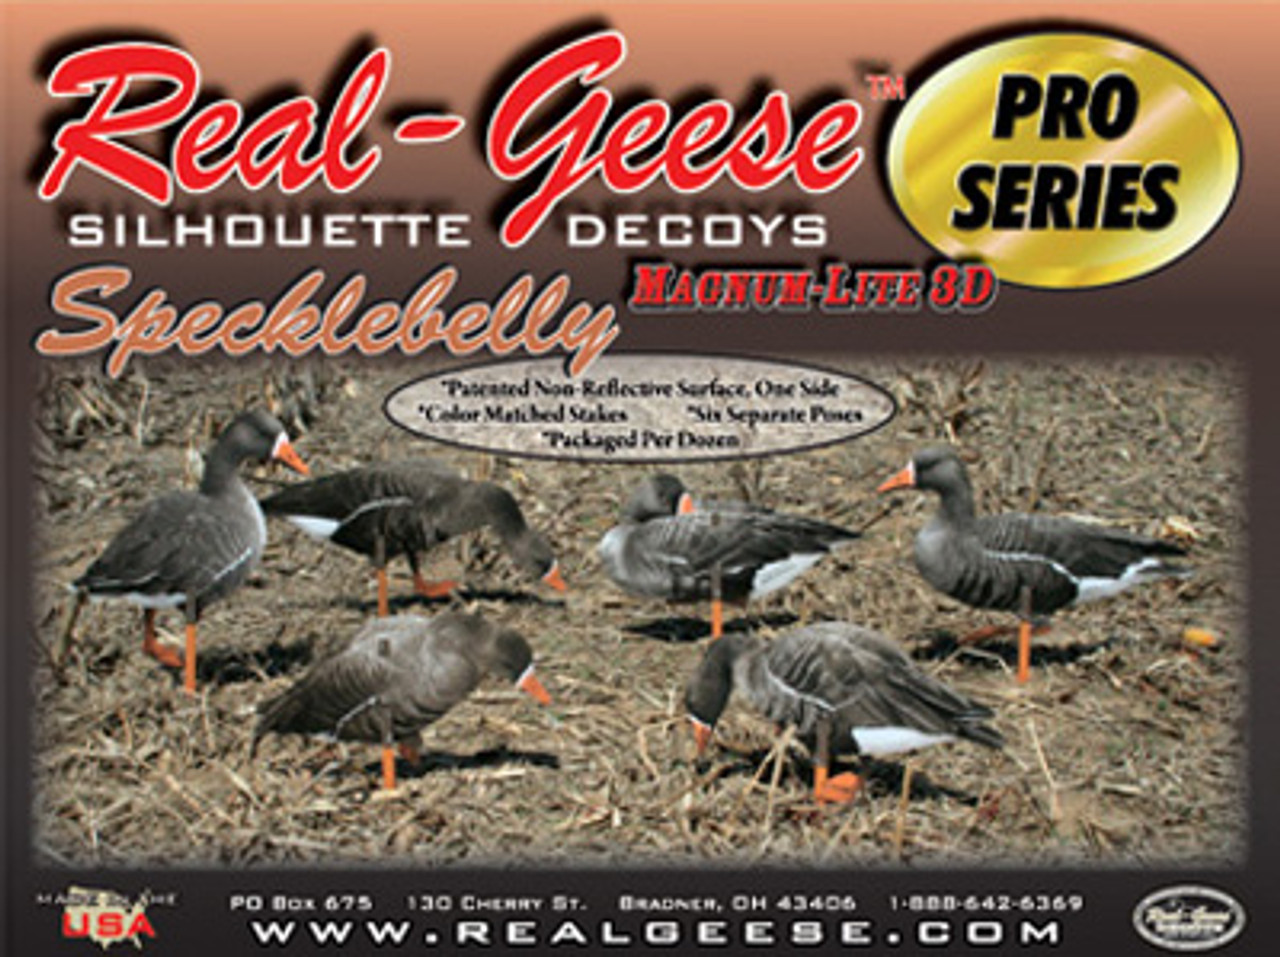 Real-Geese Pro Series Specklebelly Silhouettes